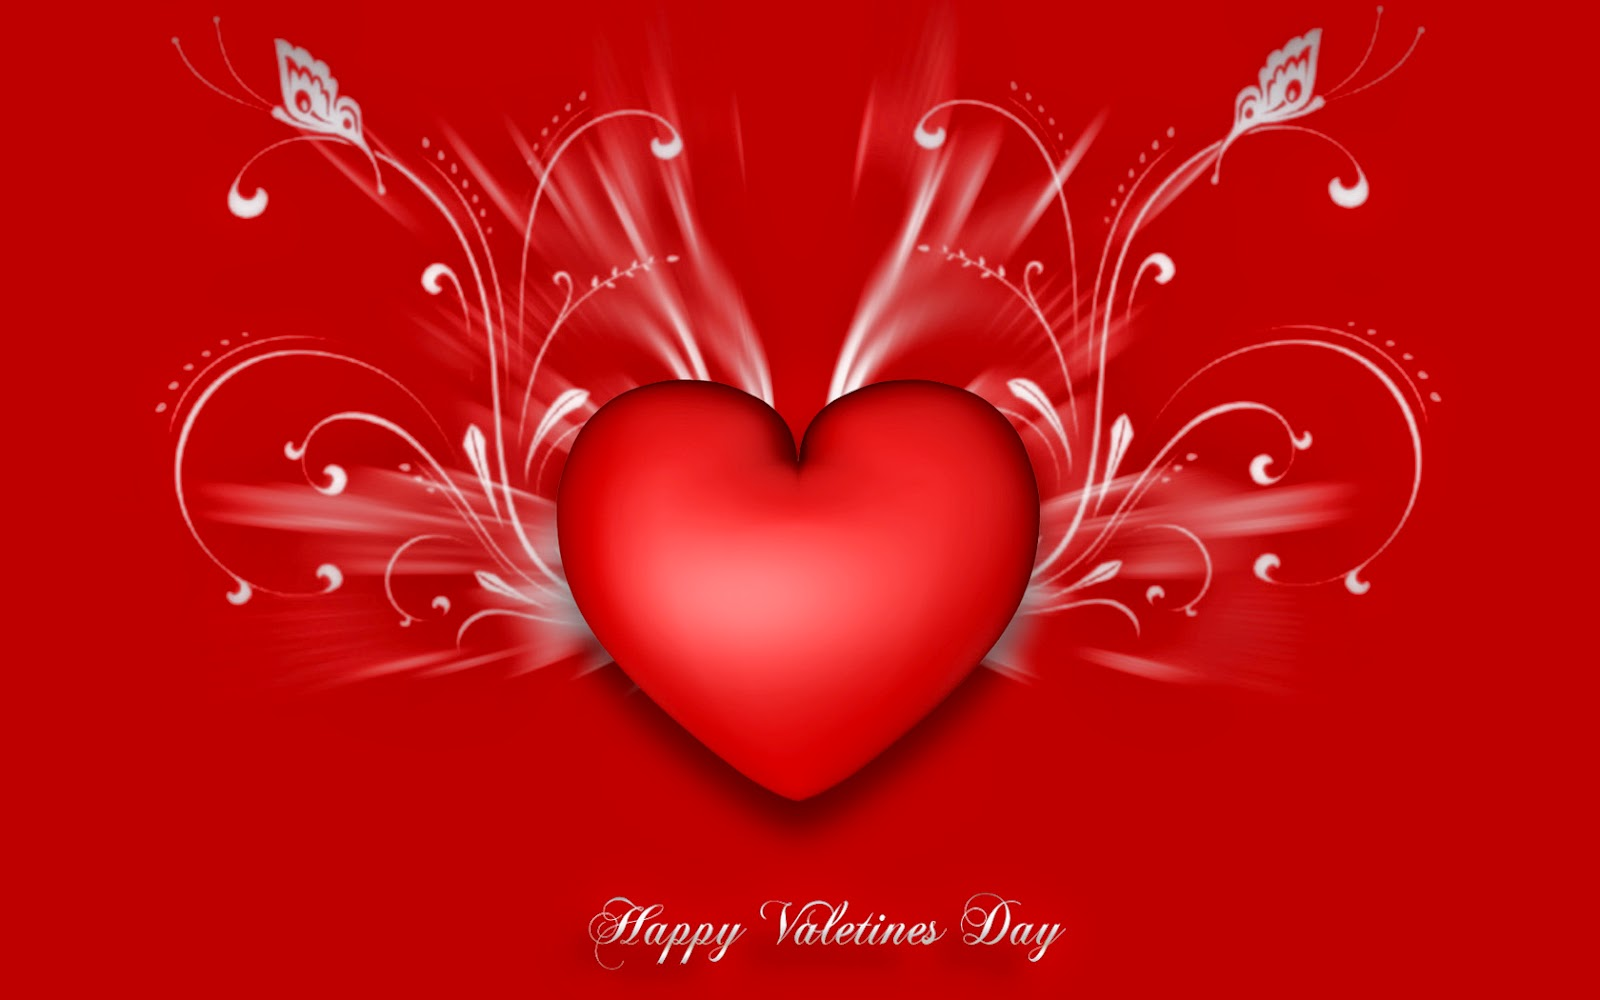 Happy Valentines Day Images for *we Chat*